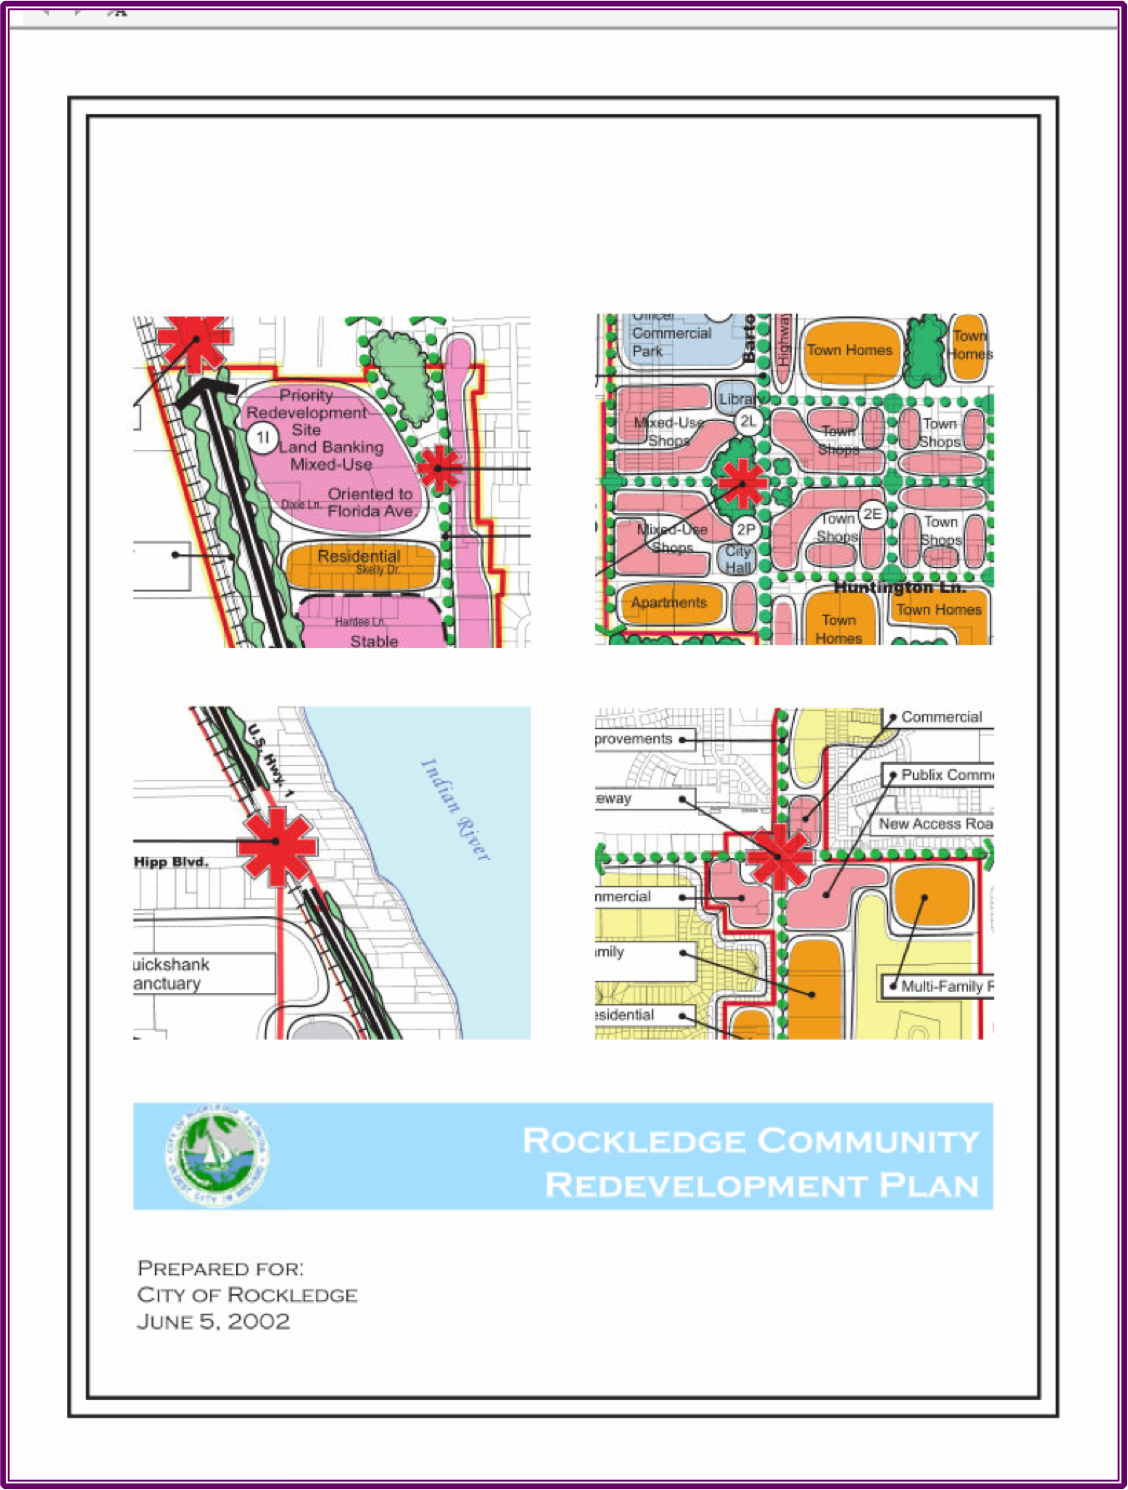 Rockledge Community Redevelopment Plan